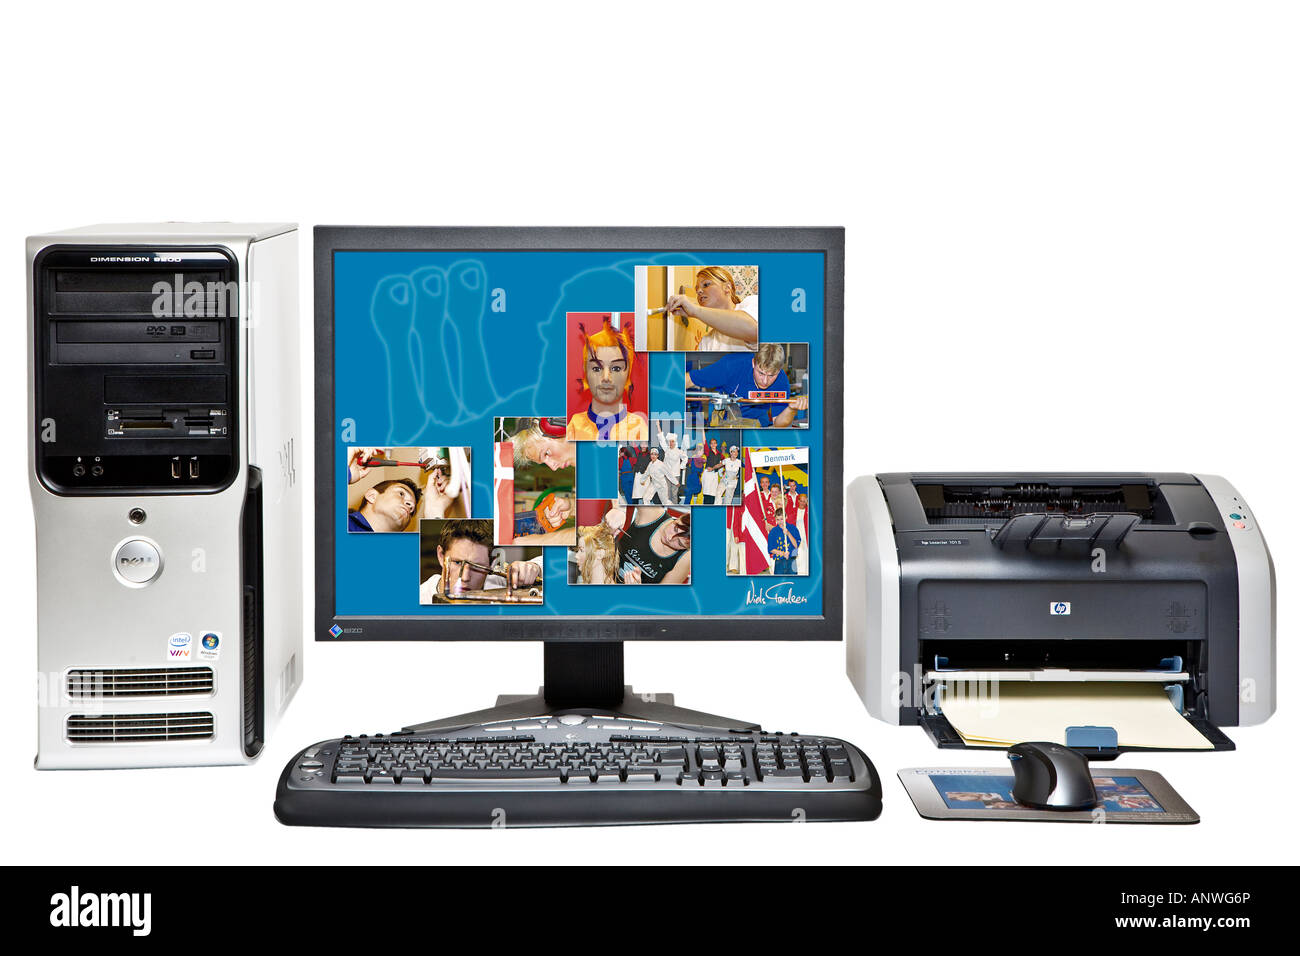 Personal computer system - Stock Image